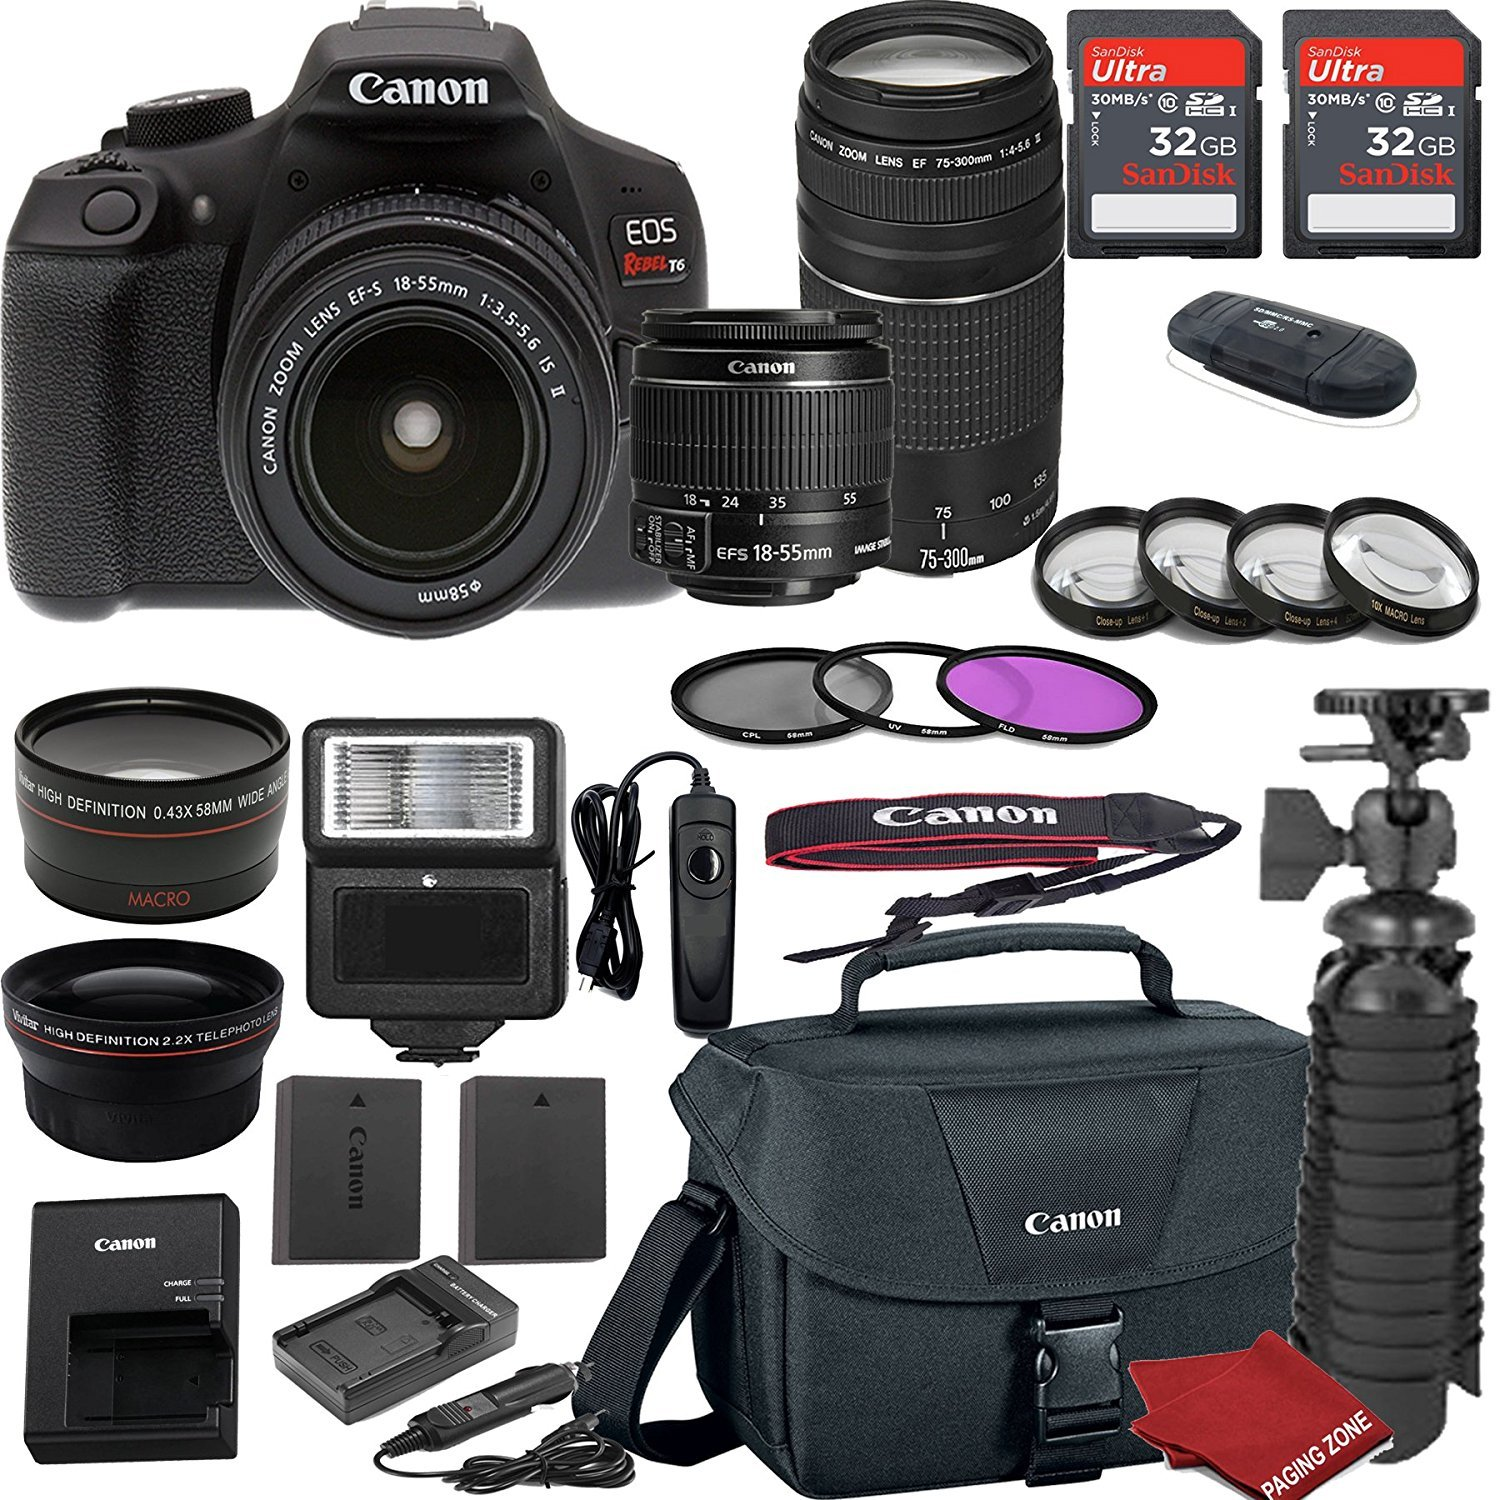 Canon EOS Rebel T6 DSLR Camera Bundle with Canon EF-S 18-55mm f/3.5-5.6 IS II Lens + EF 75-300mm f/4-5.6 III Lens + 2pc Sandisk 32gb Memory + Spare Canon Battery + Value Accessory Kit